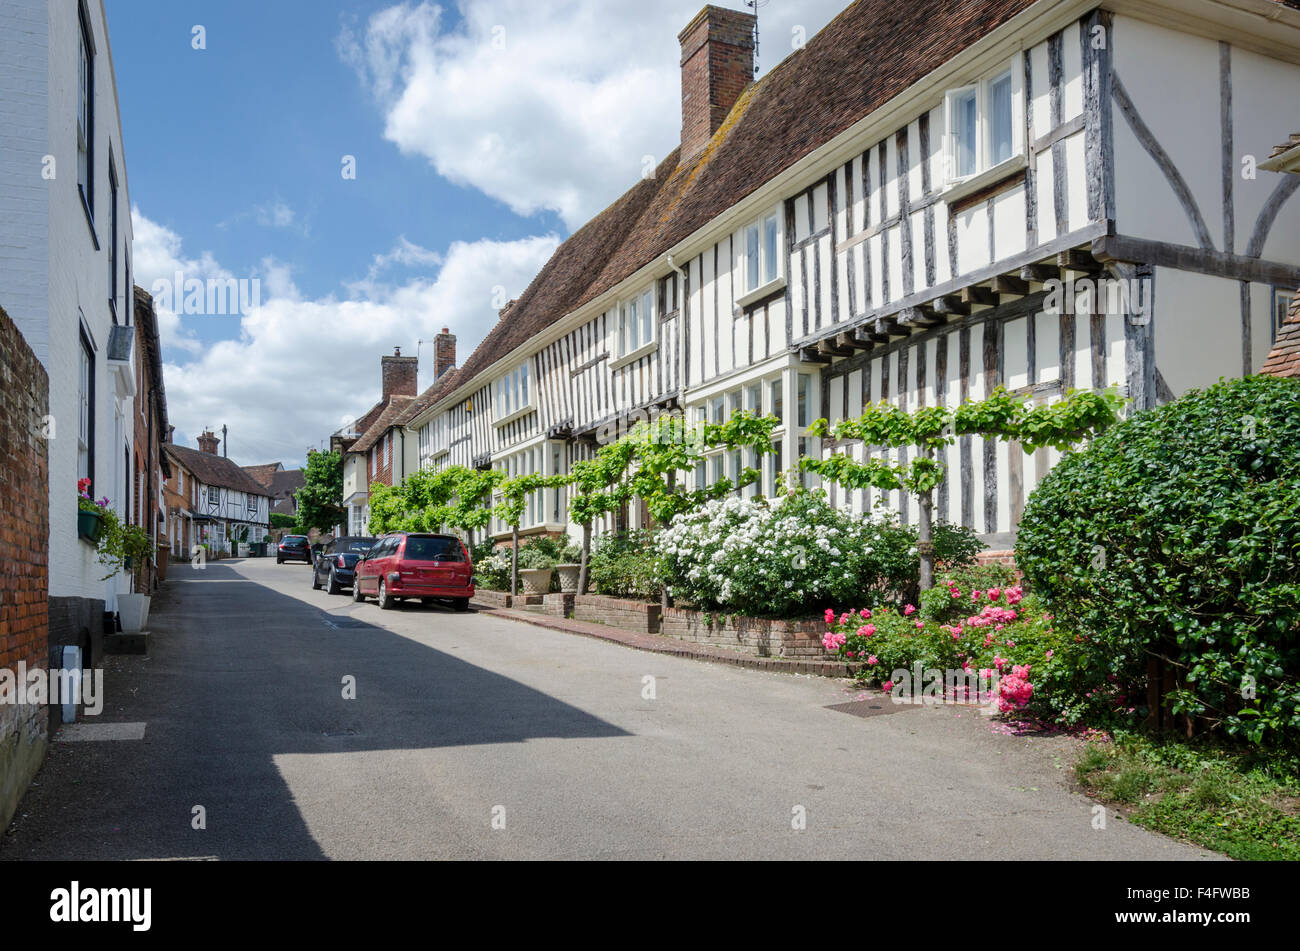 Pretty street in the village of Chilham, Kent, UK, with tudor cottage in the foreground - Stock Image